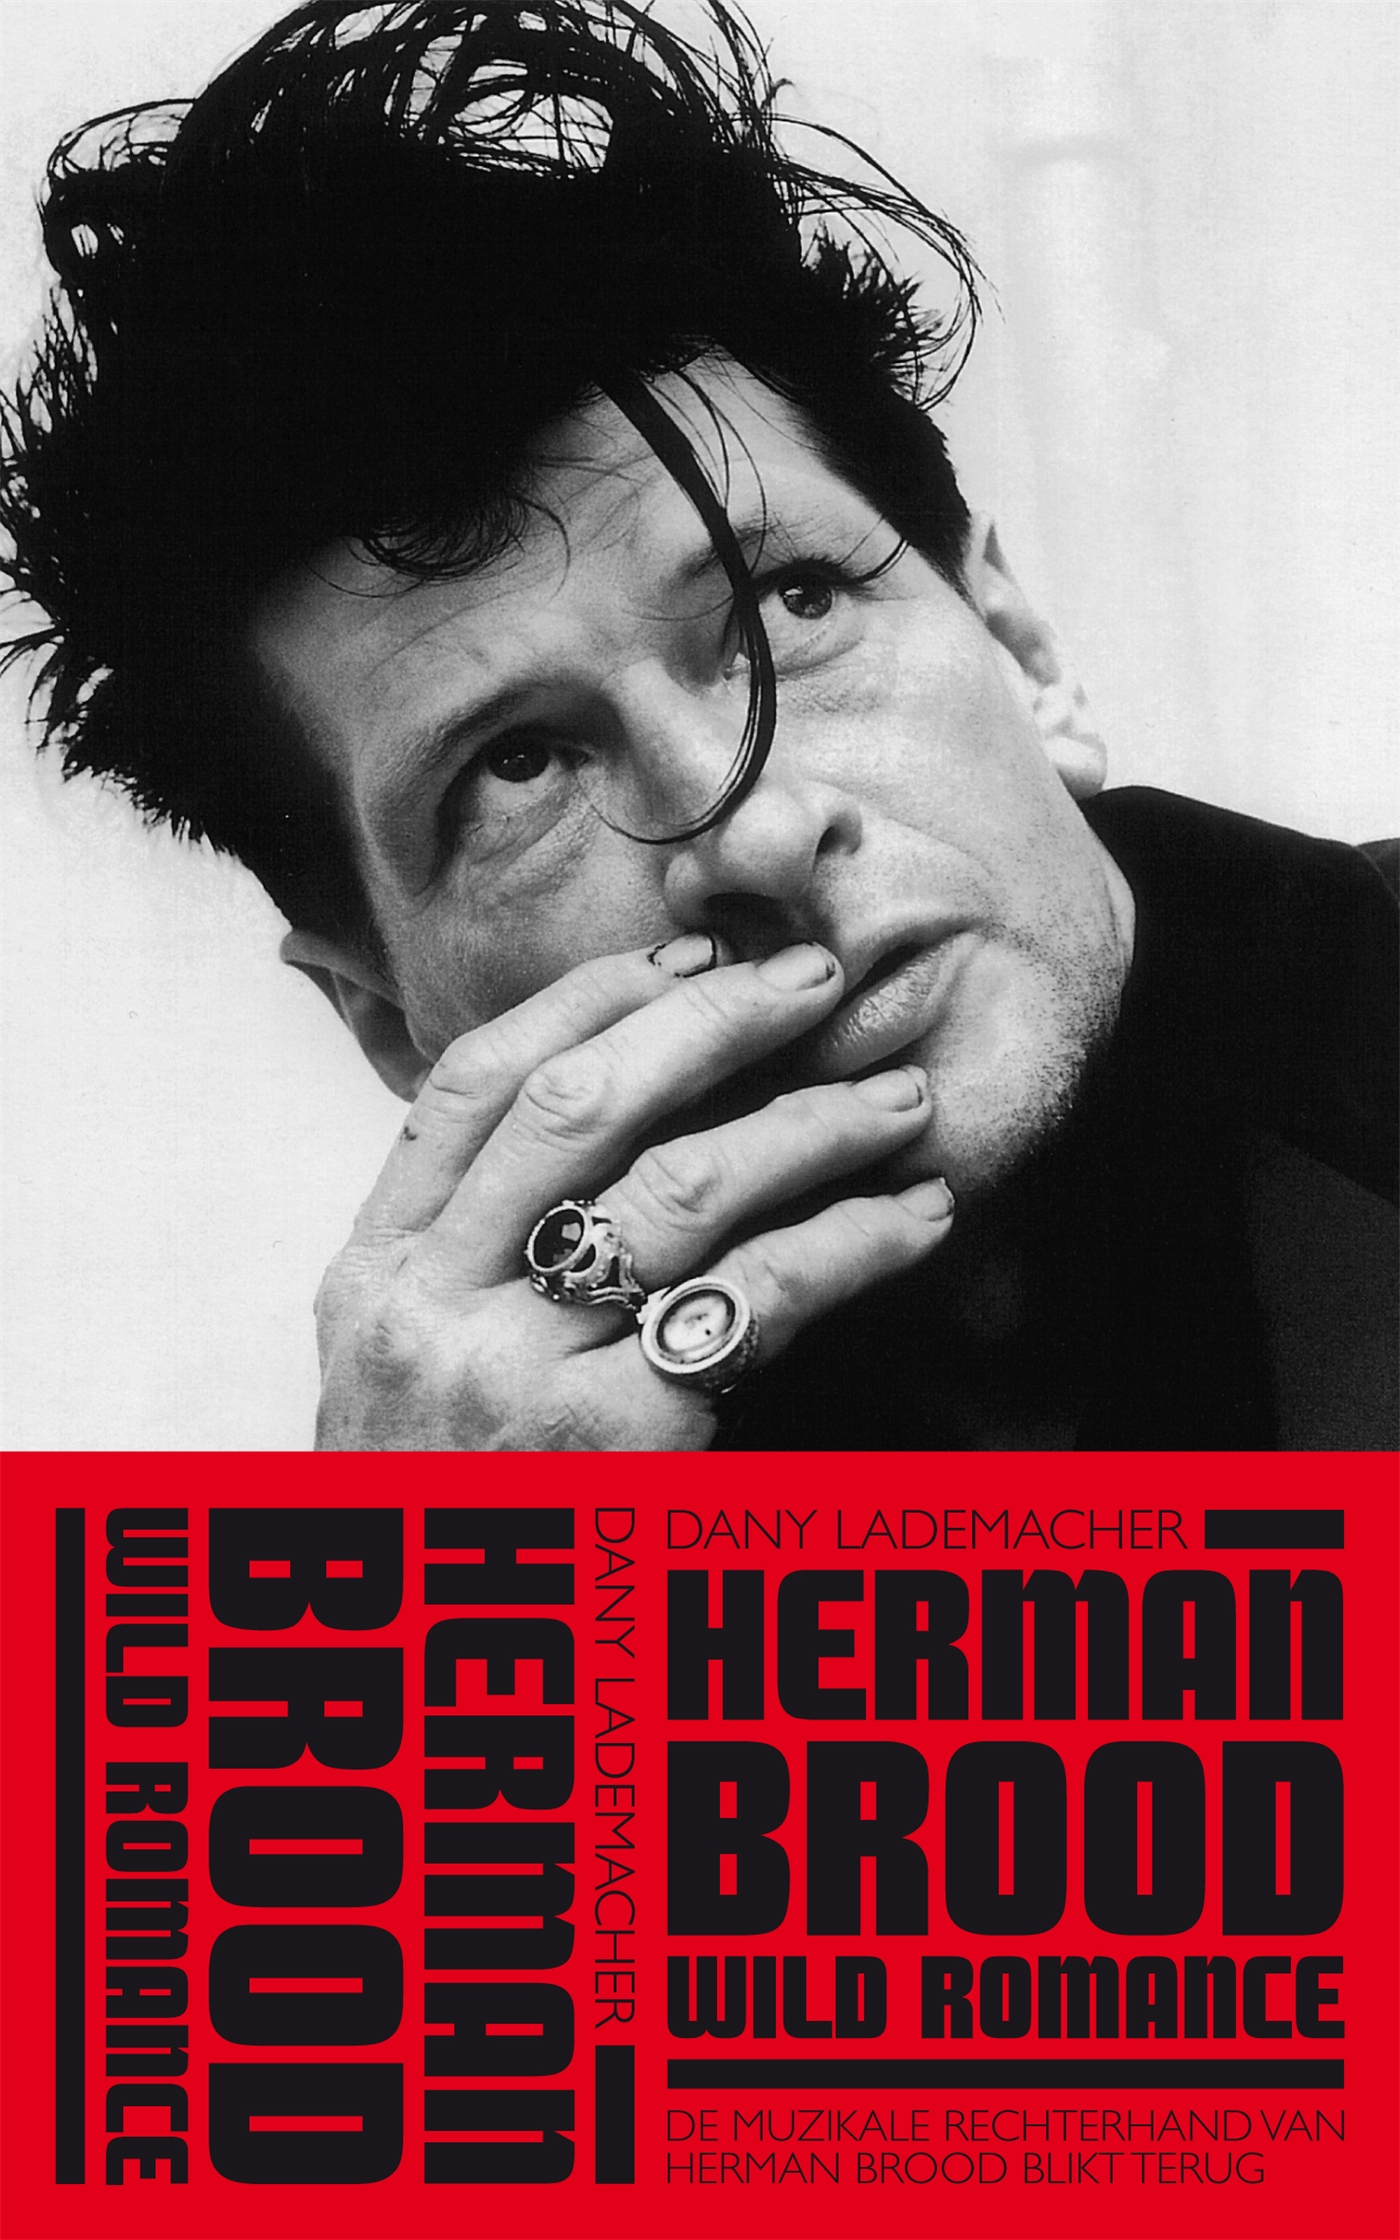 Herman Brood - Wild Romance